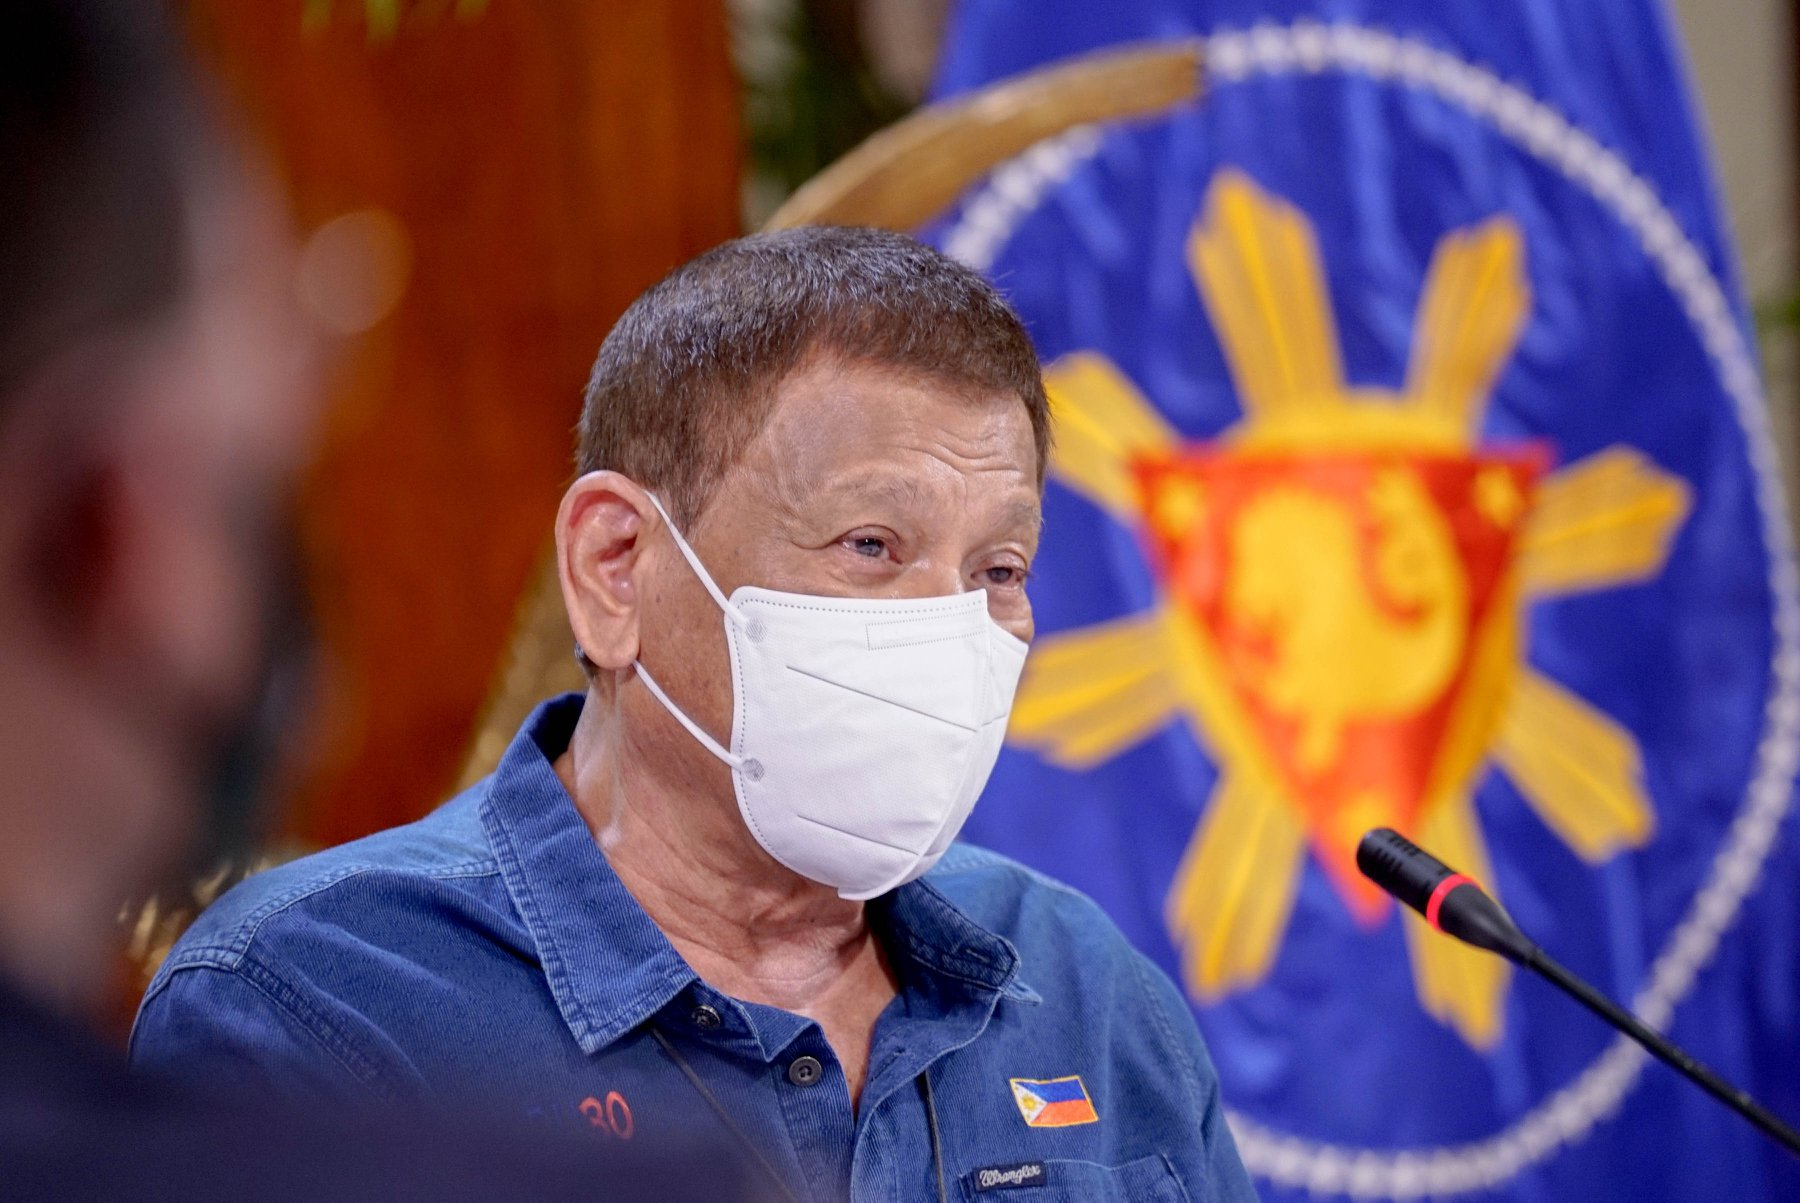 Duterte hits front liners' 'revolution' but 'demilitarized medical quarantine' was what they called for